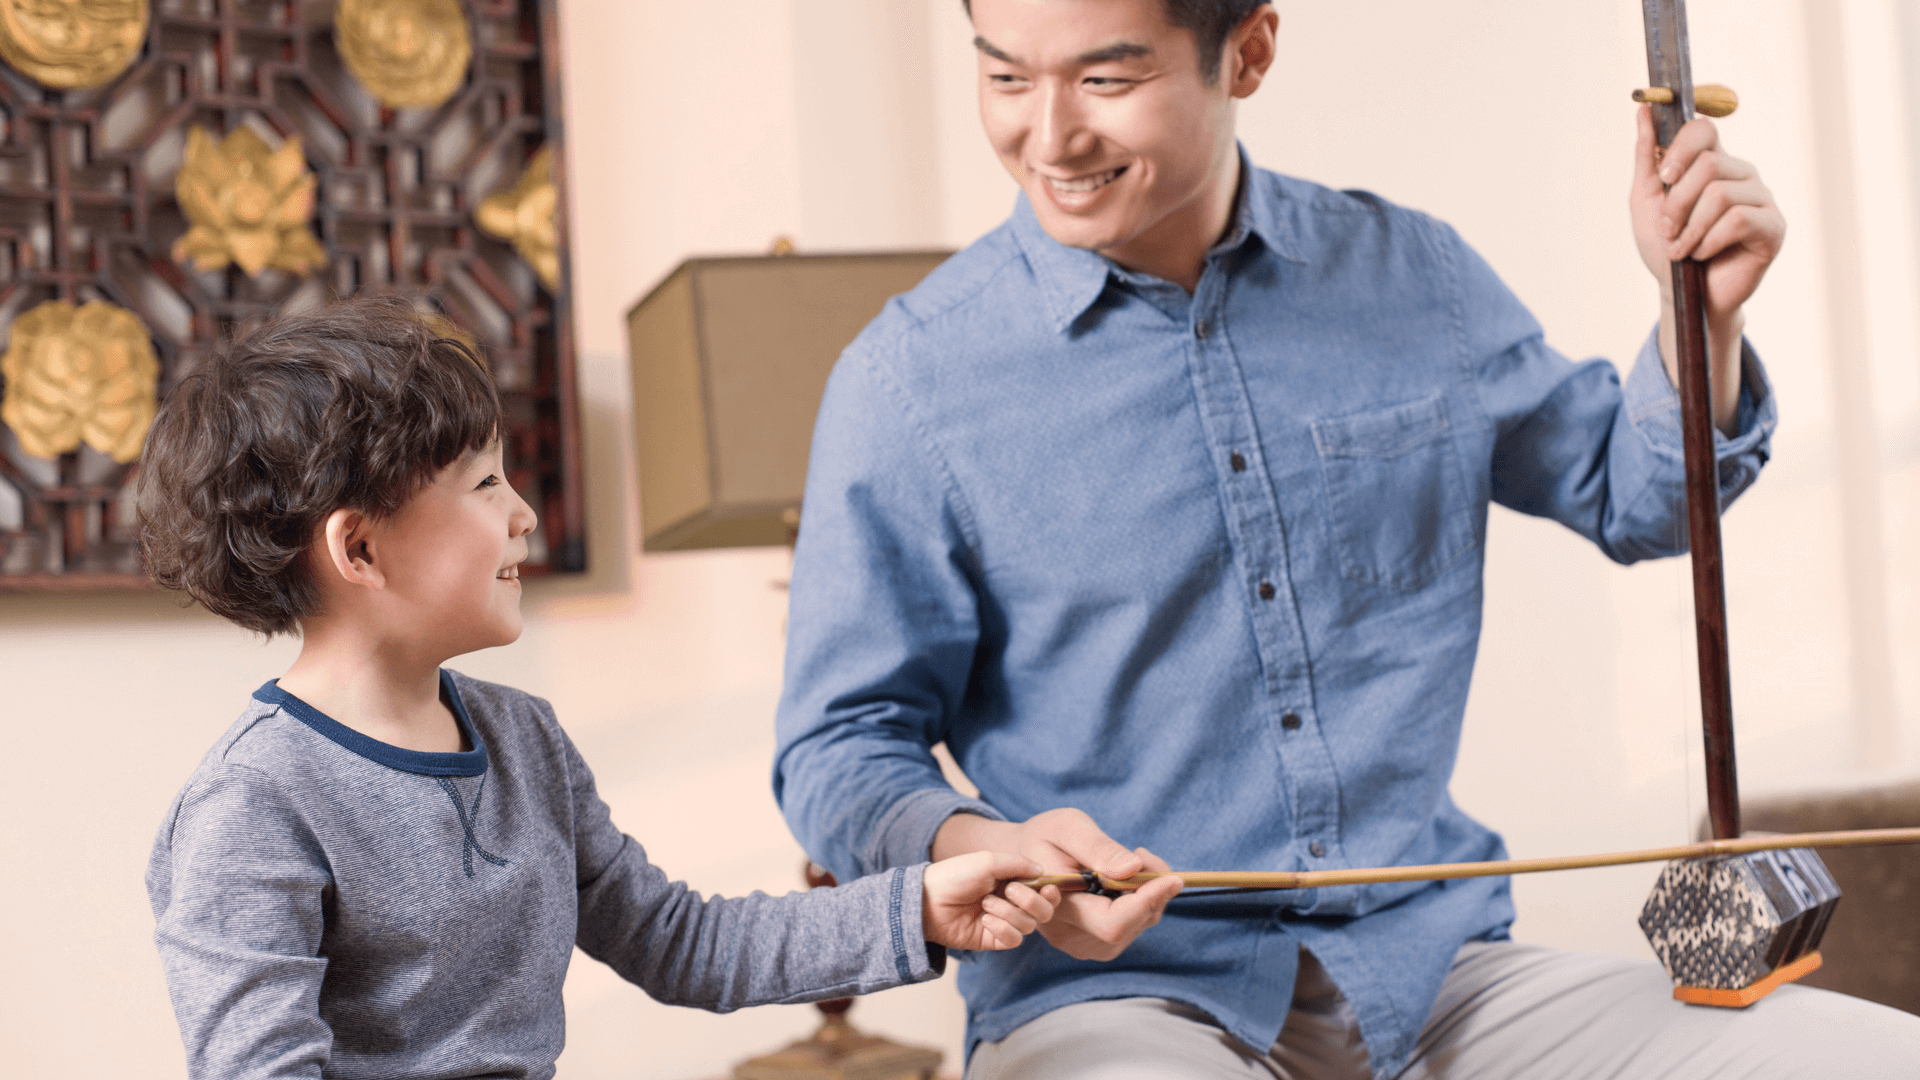 Erhu teacher helping with erhu lessons at Ping's Music School